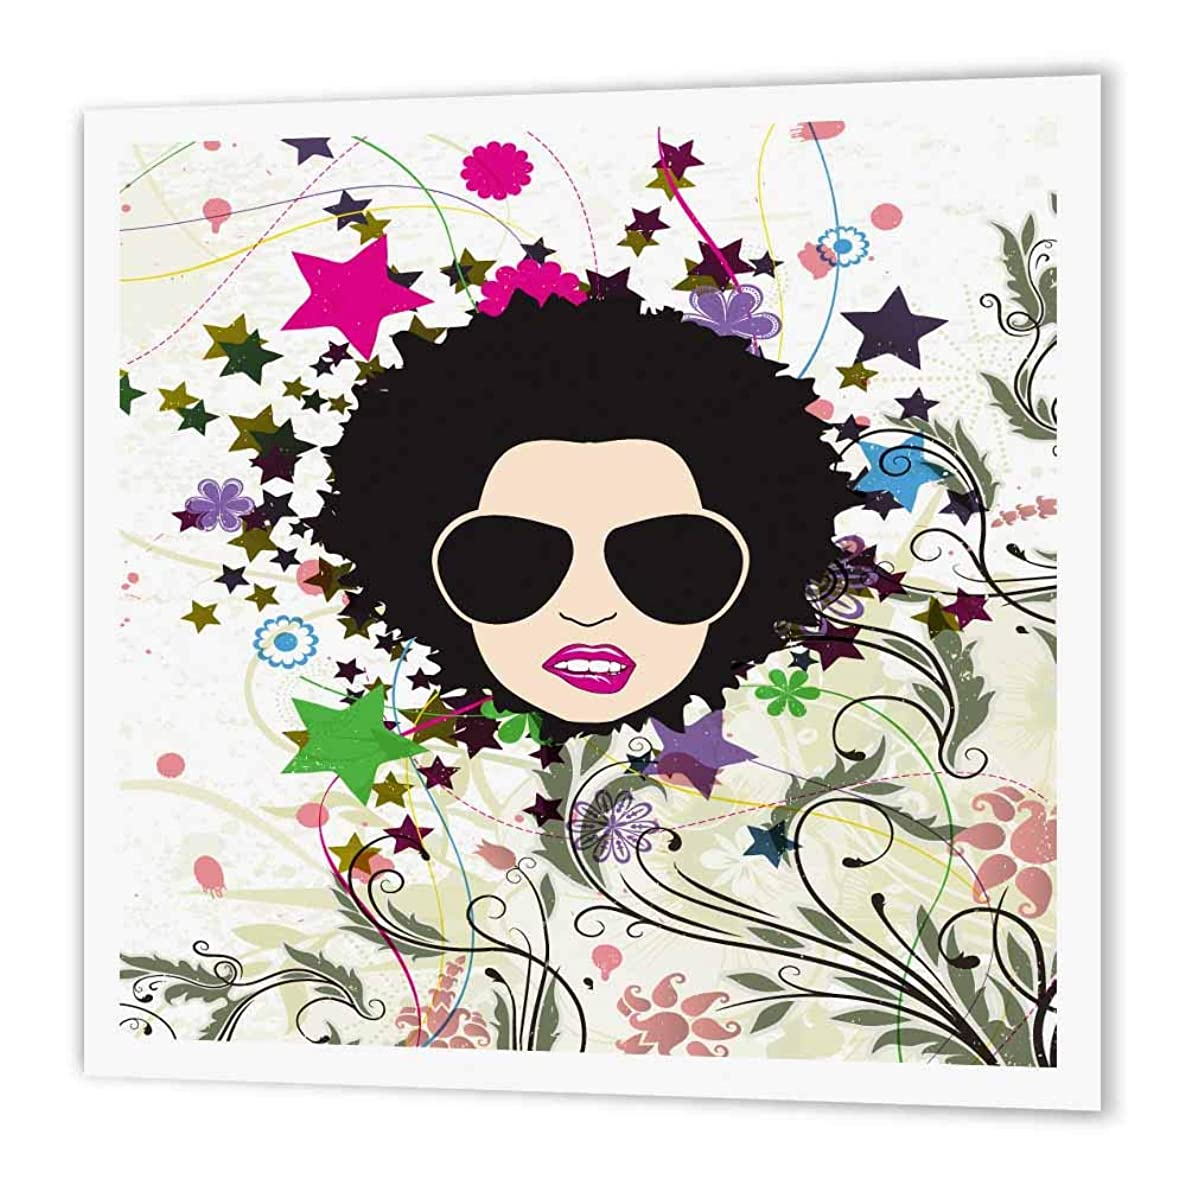 3dRose ht_119075_1 Urban Grunge Pop Art Floral Bliss Attitude Diva Girl with Afro & Shades Modern Vector Art Iron on Heat Transfer Paper for White Material, 8 by 8